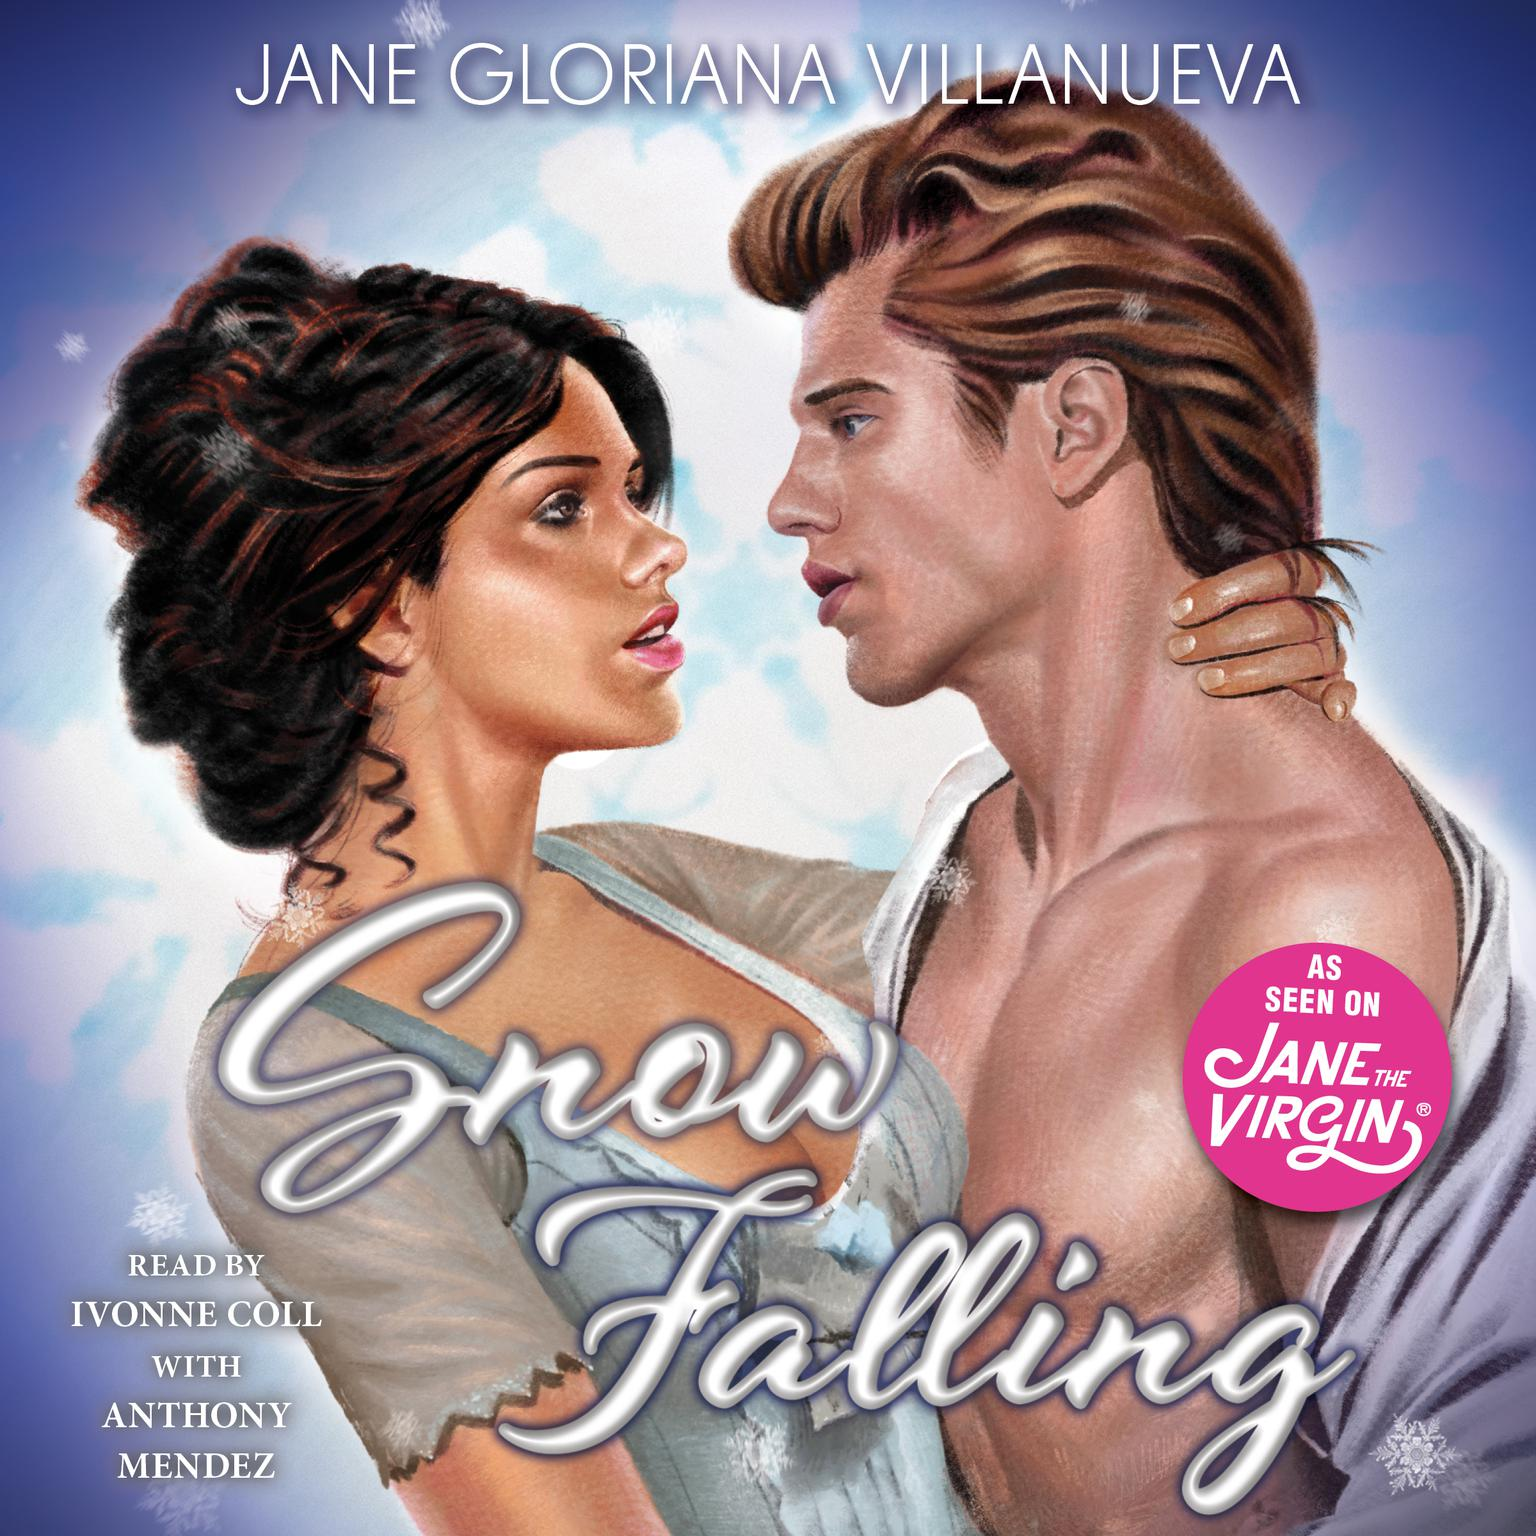 Printable Snow Falling: A Romance Novel Audiobook Cover Art